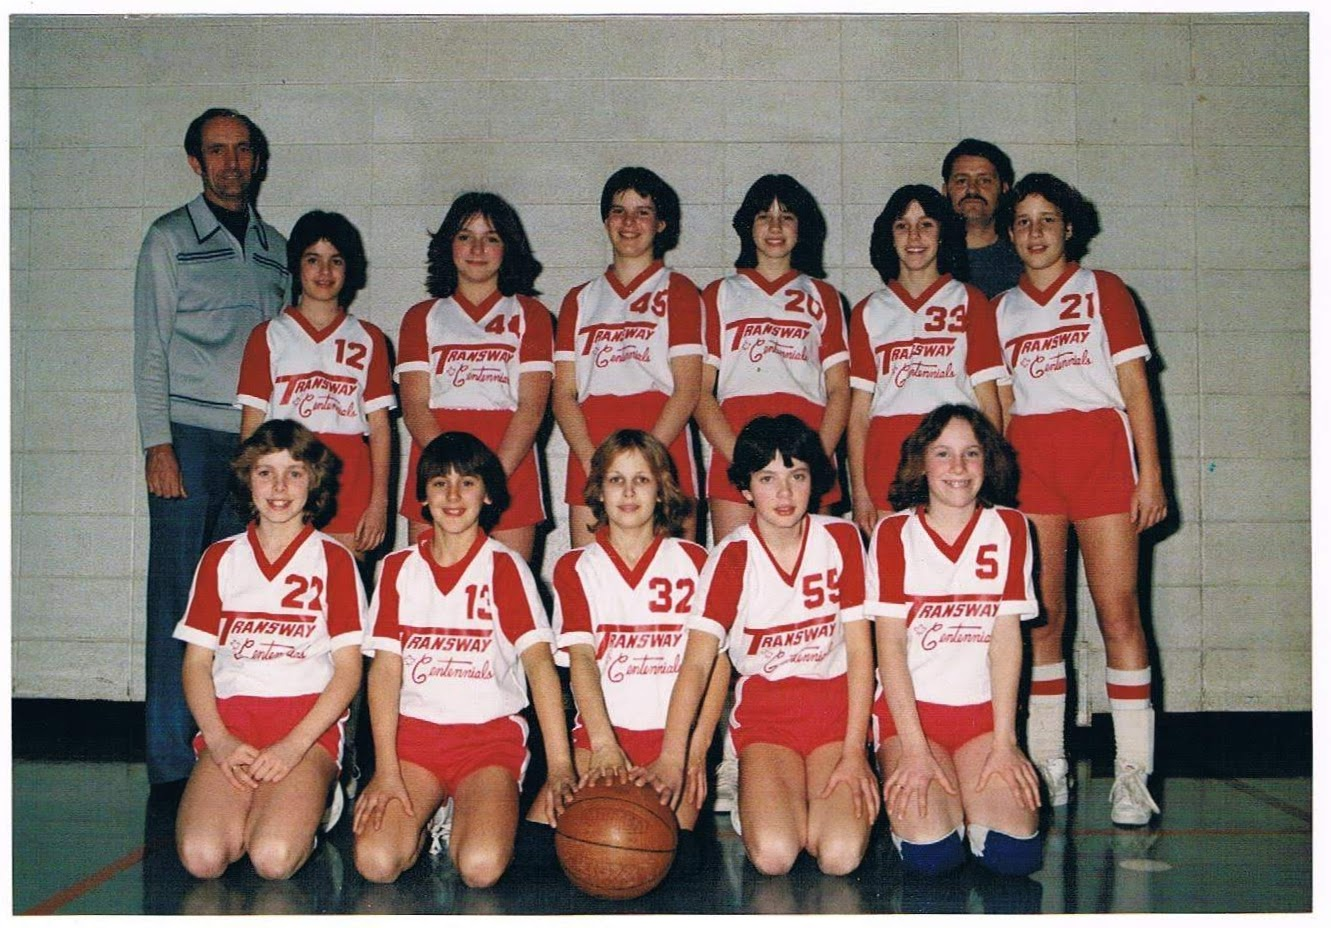 The first Transway Basketball team, 1979    Back Row:  Doug Harrison (coach), Barb O'Connor, Diane Jojic, Louise Feeney, Heather Long, Vicky Harrison, Brian Humes (Coach), Tina Gasparik   Front Row : Kathy Harrison, Lisa Ciancone, Lara Sears, Patty O'Brien, Nancy Dewar  Missing: Martina Krebs